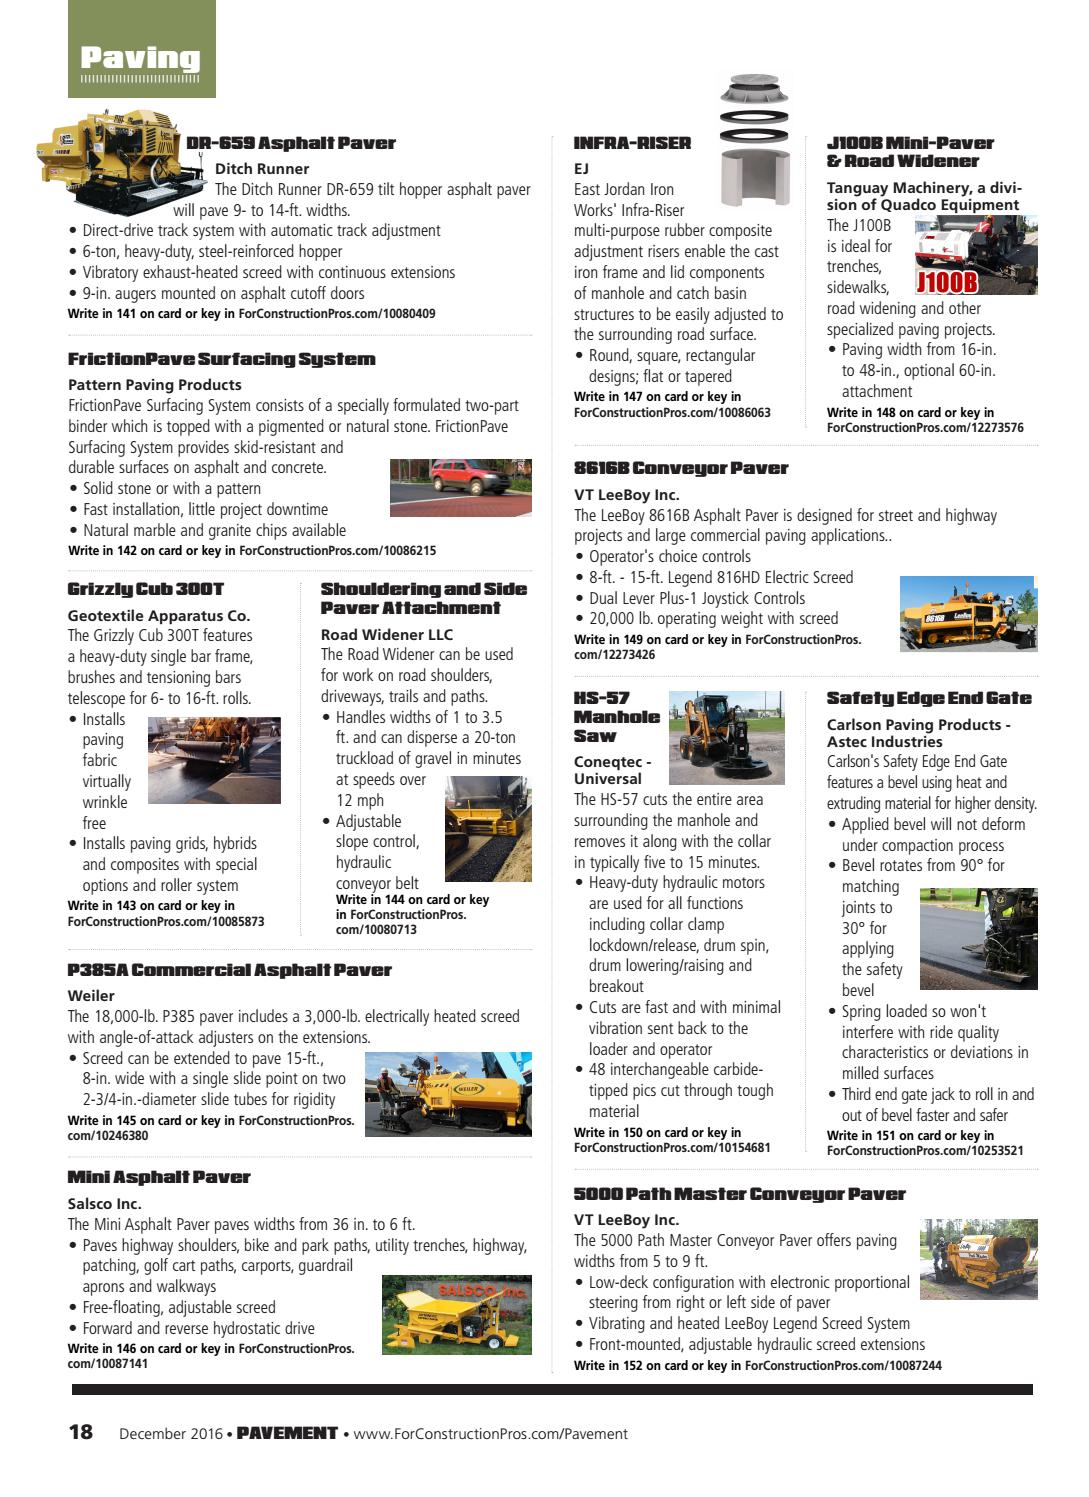 Pavement Maintenance & Reconstruction December 2016 by ForConstructionPros.com - issuu